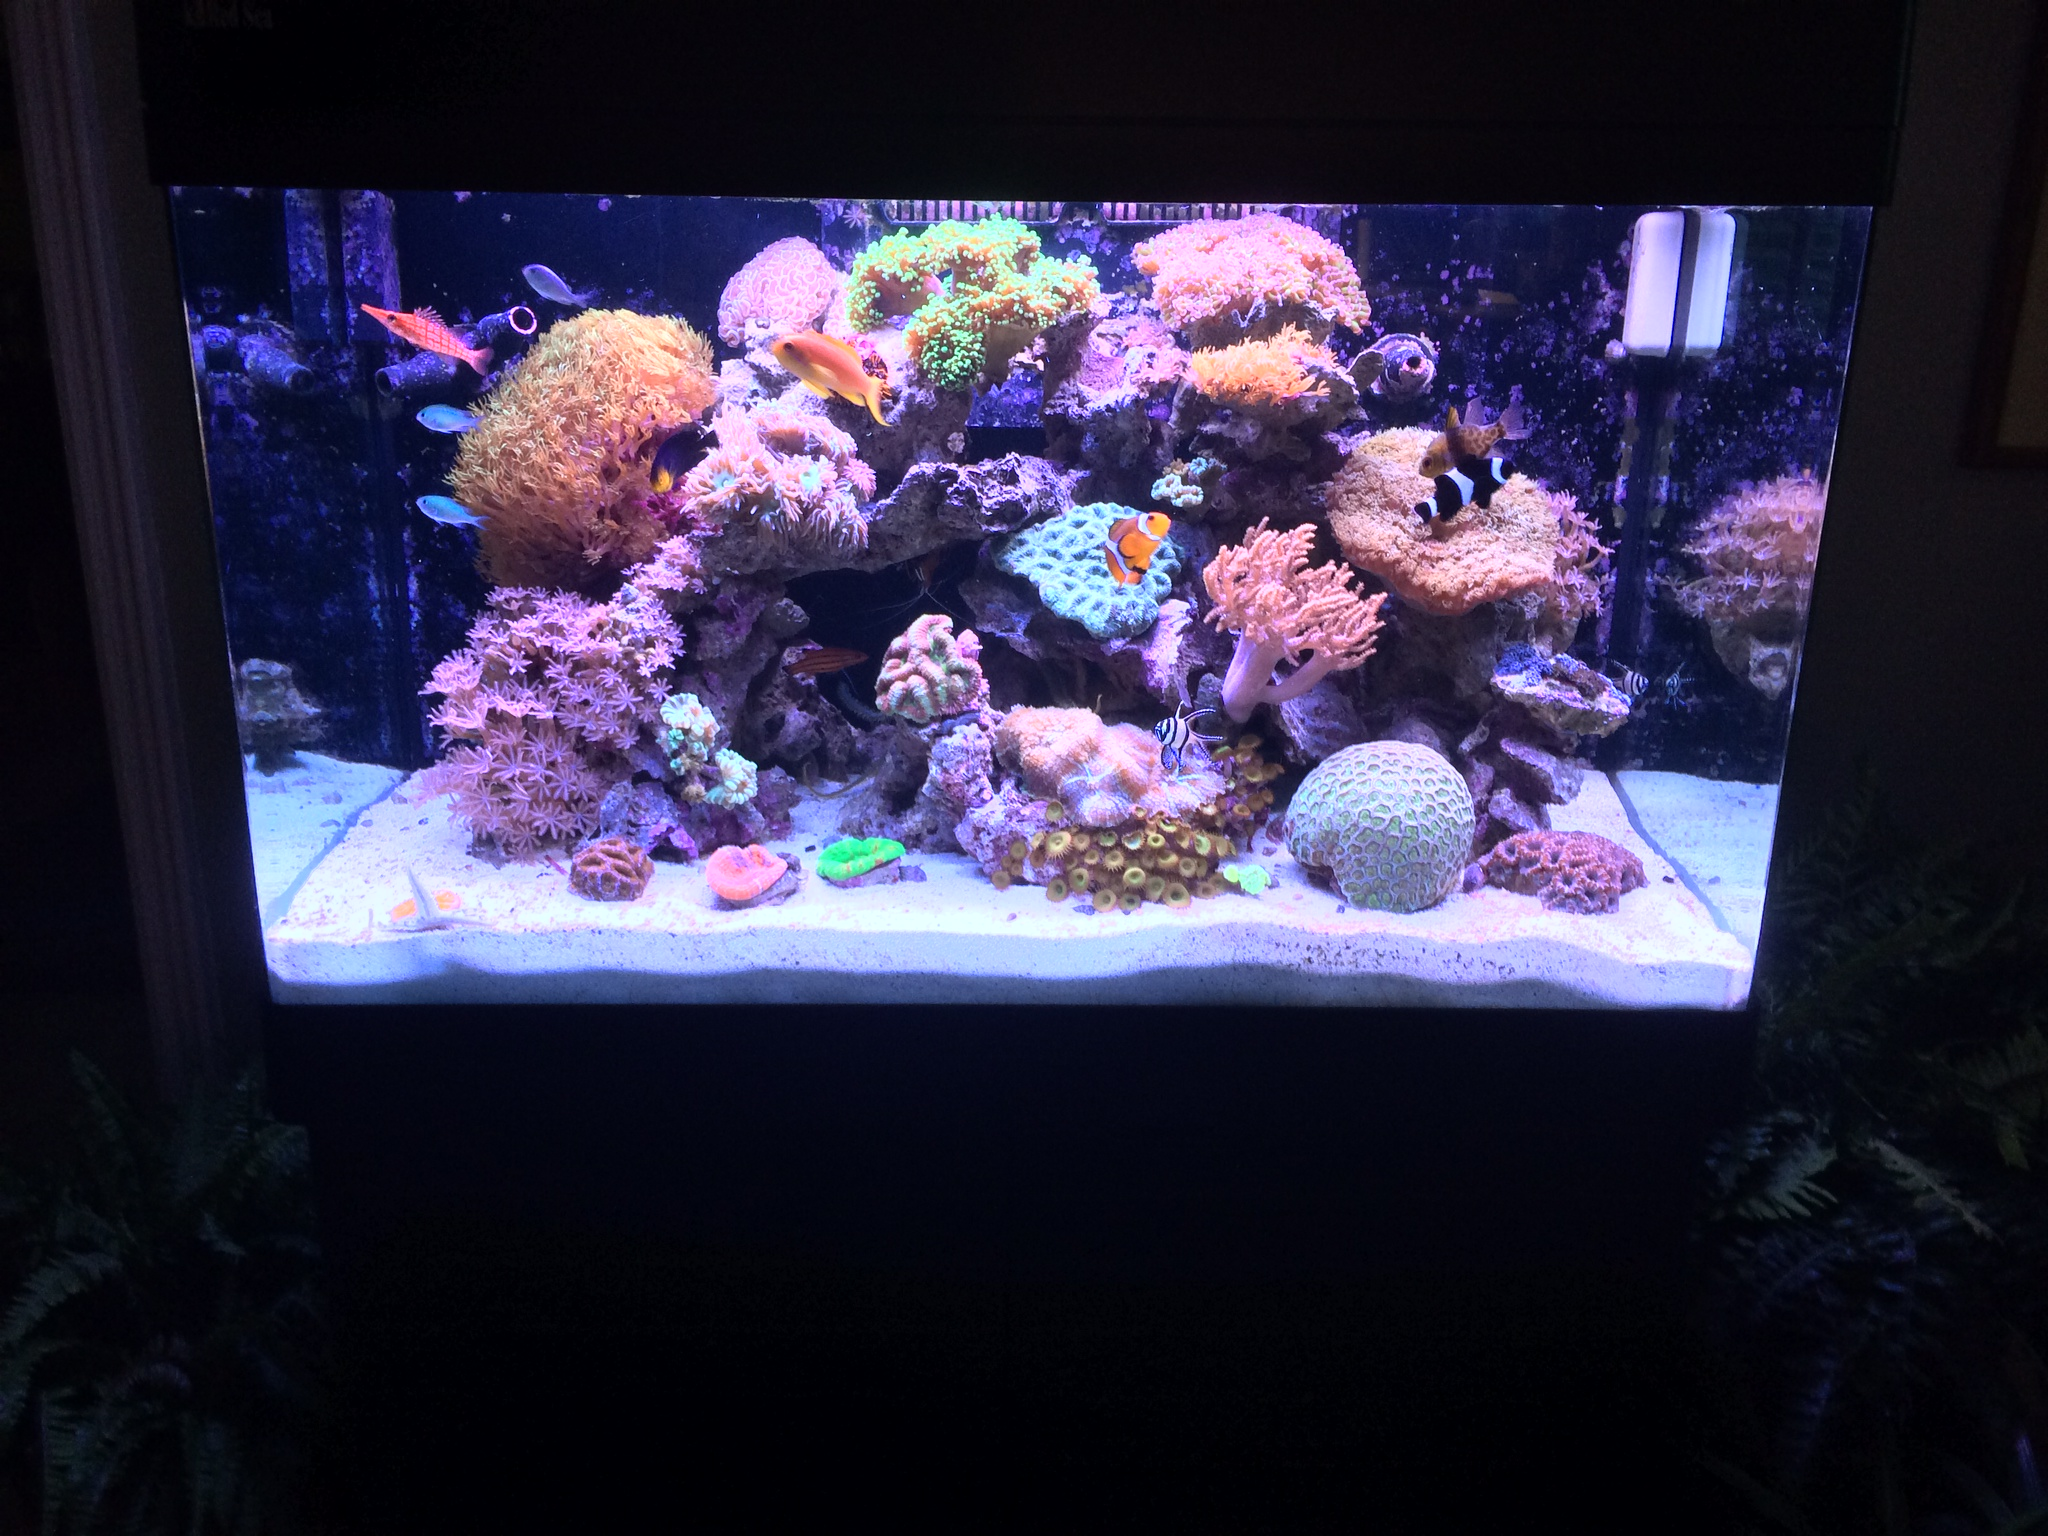 a quick shot of a nice little 60 gal reef we maintain. Black Bedroom Furniture Sets. Home Design Ideas